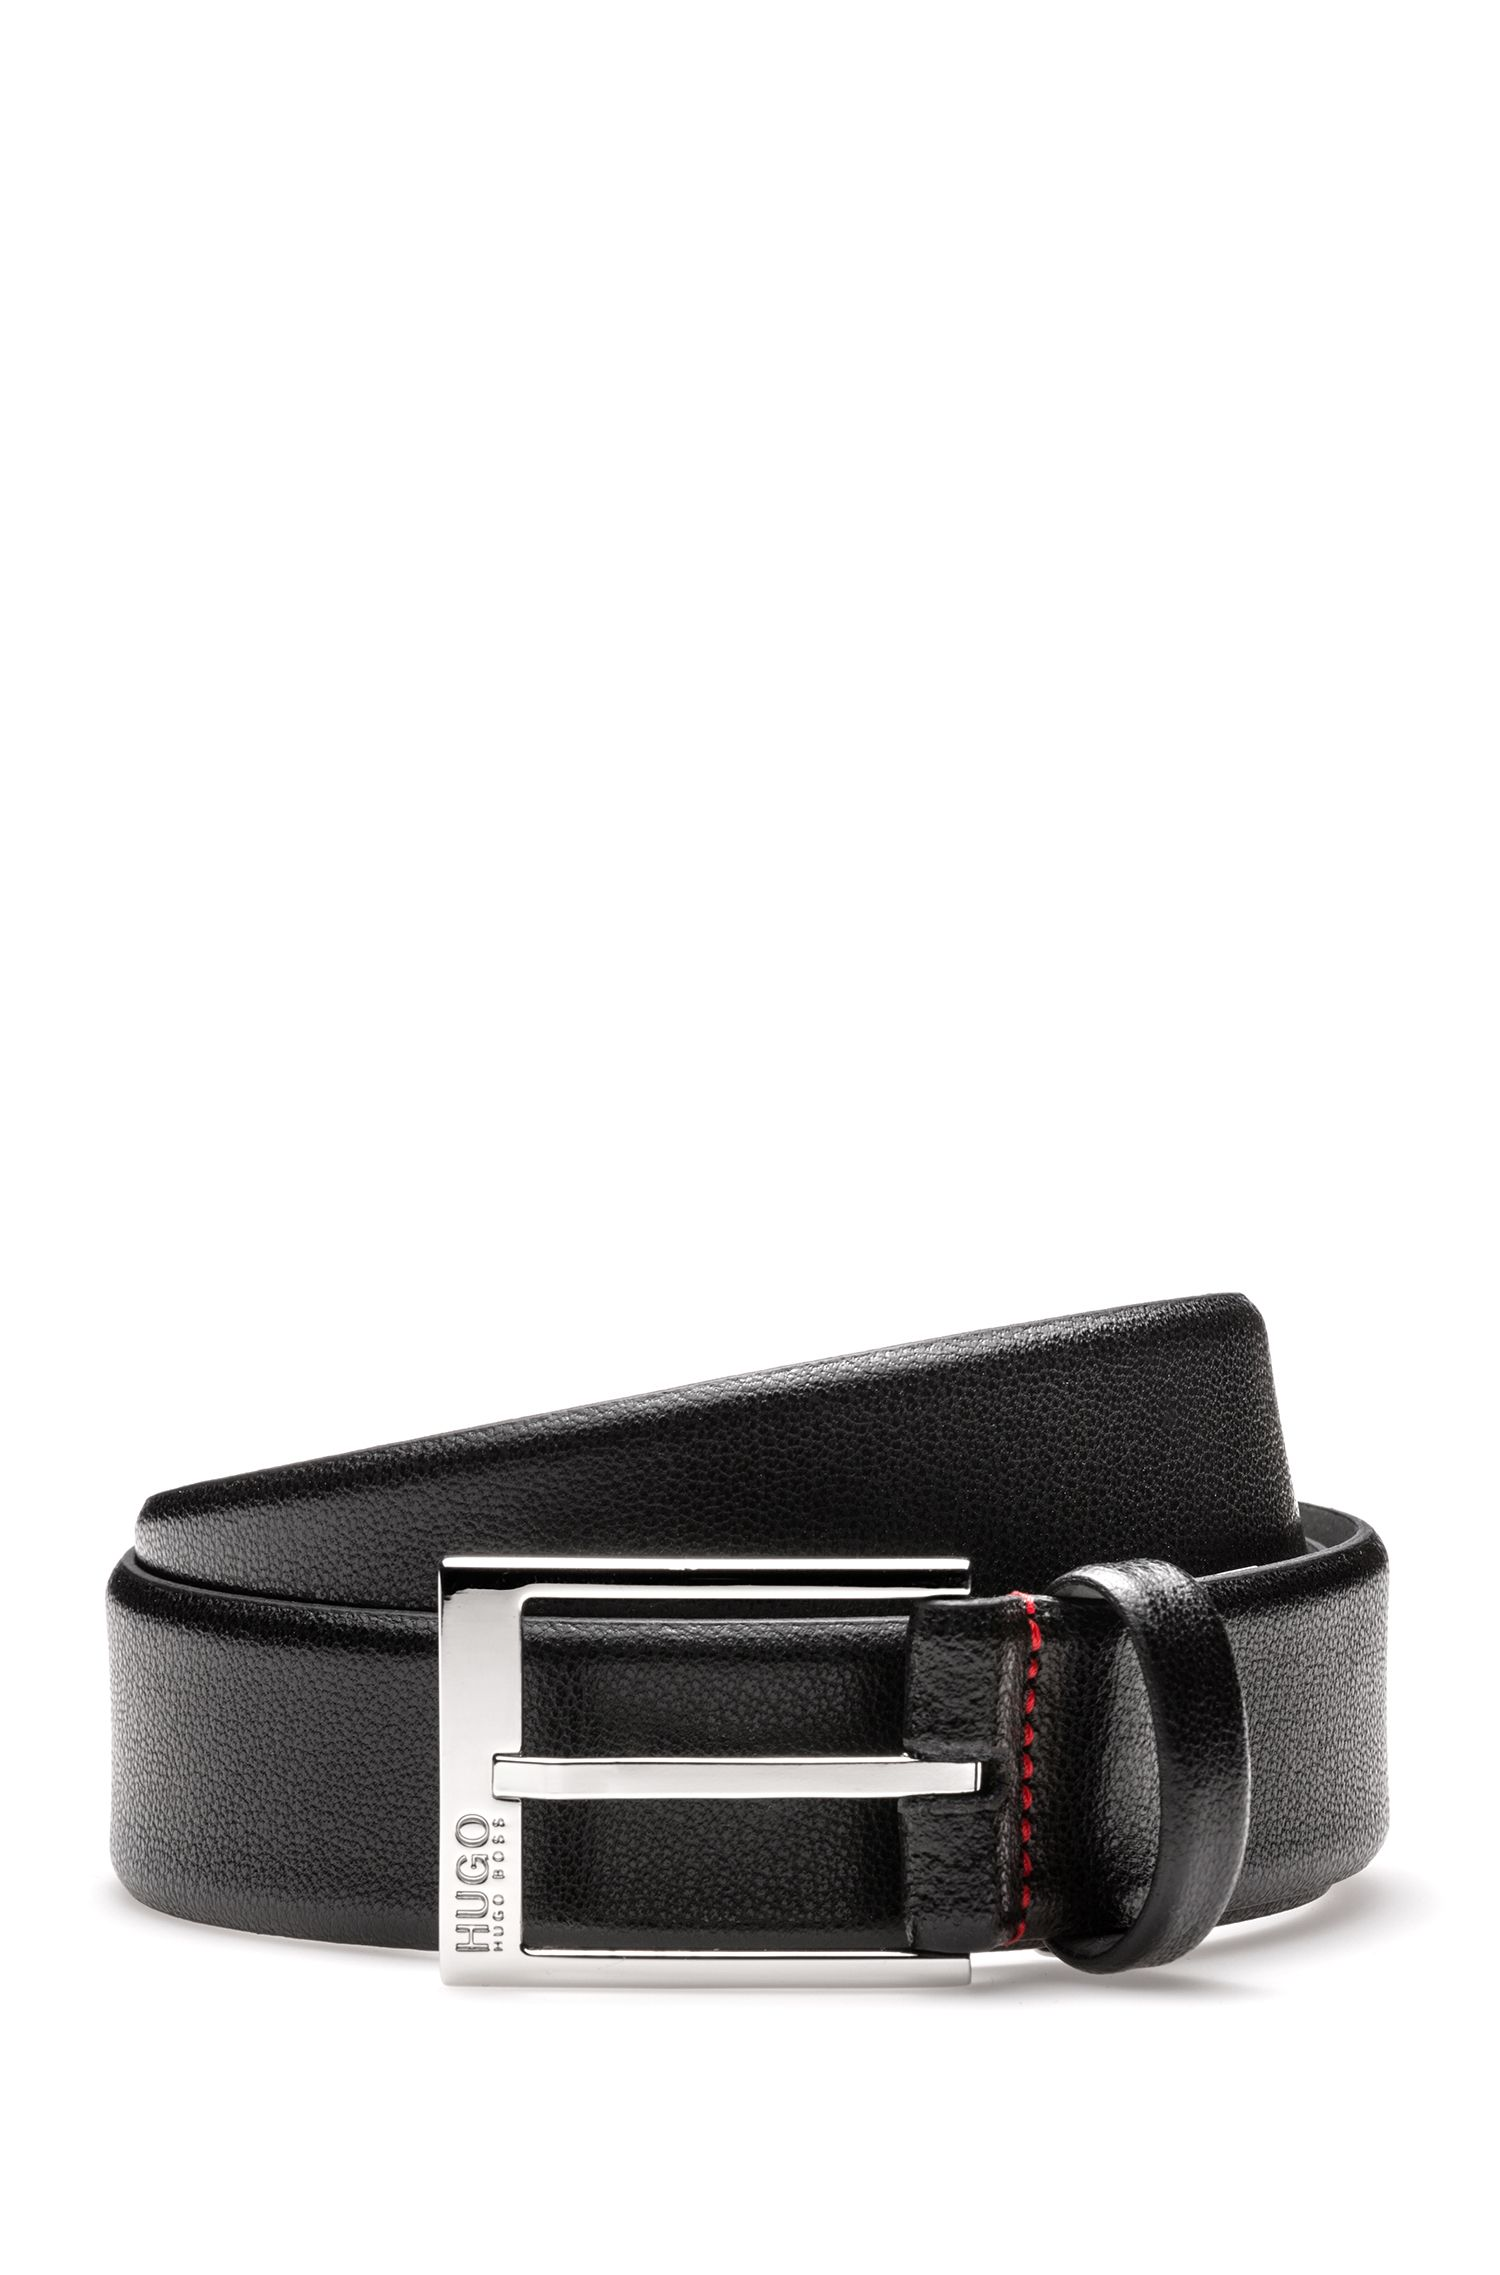 Embossed leather belt with polished silver-effect hardware